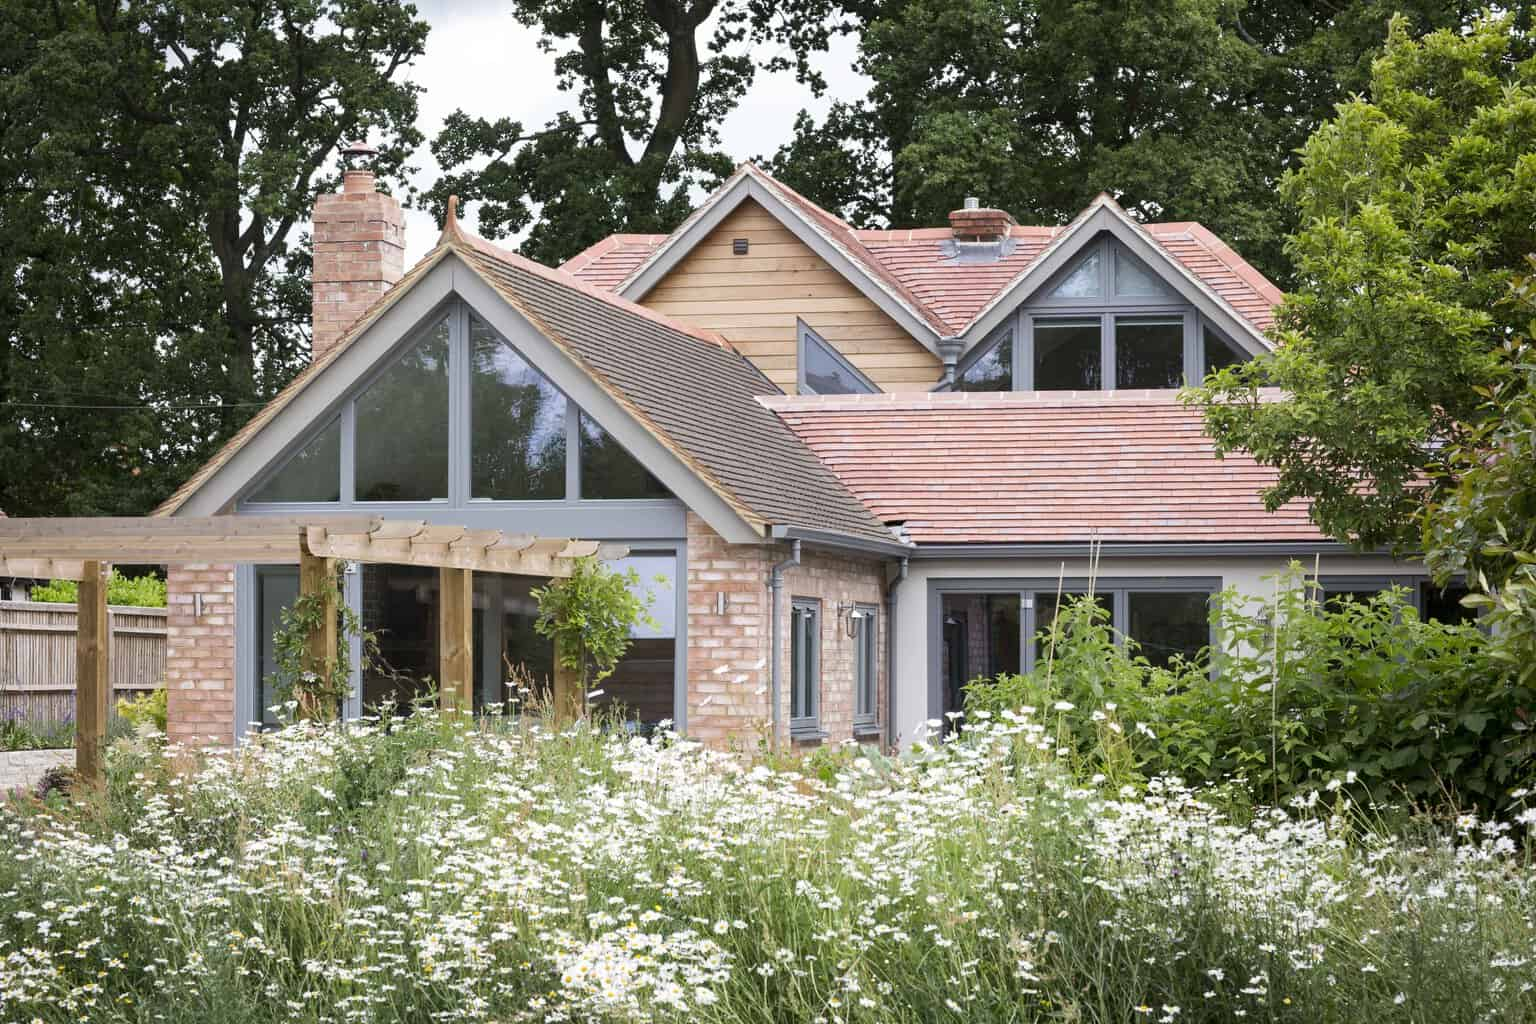 PERFORMANCE triple glazed timber windows and doors